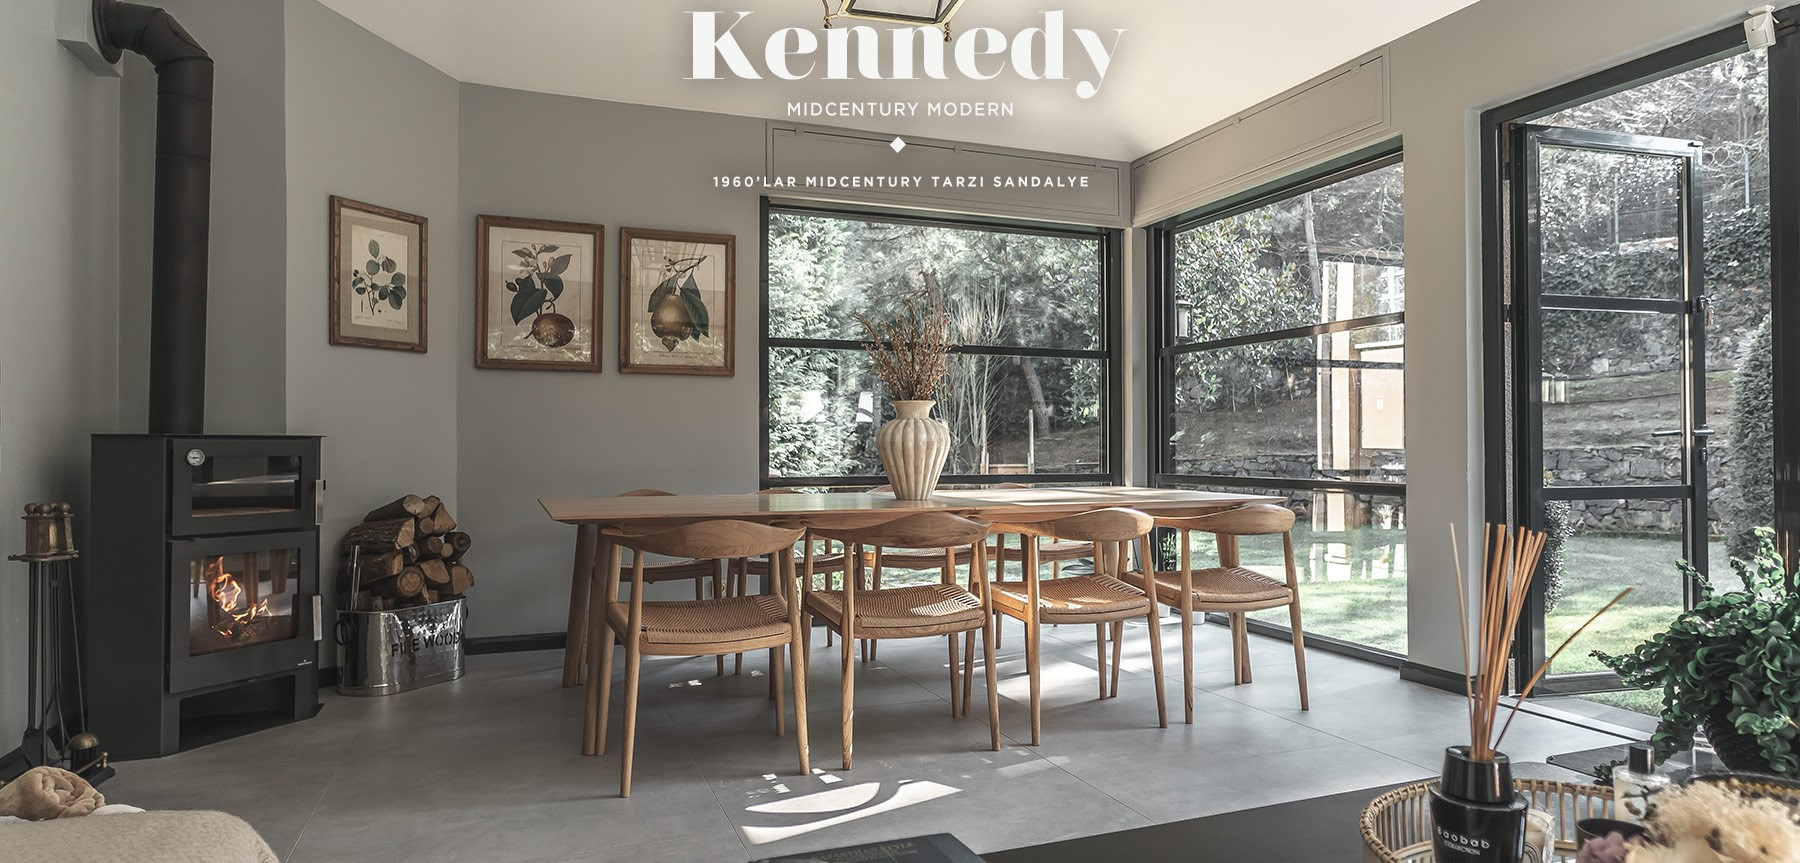 Kennedy ArmChair Sandalye'in resmi